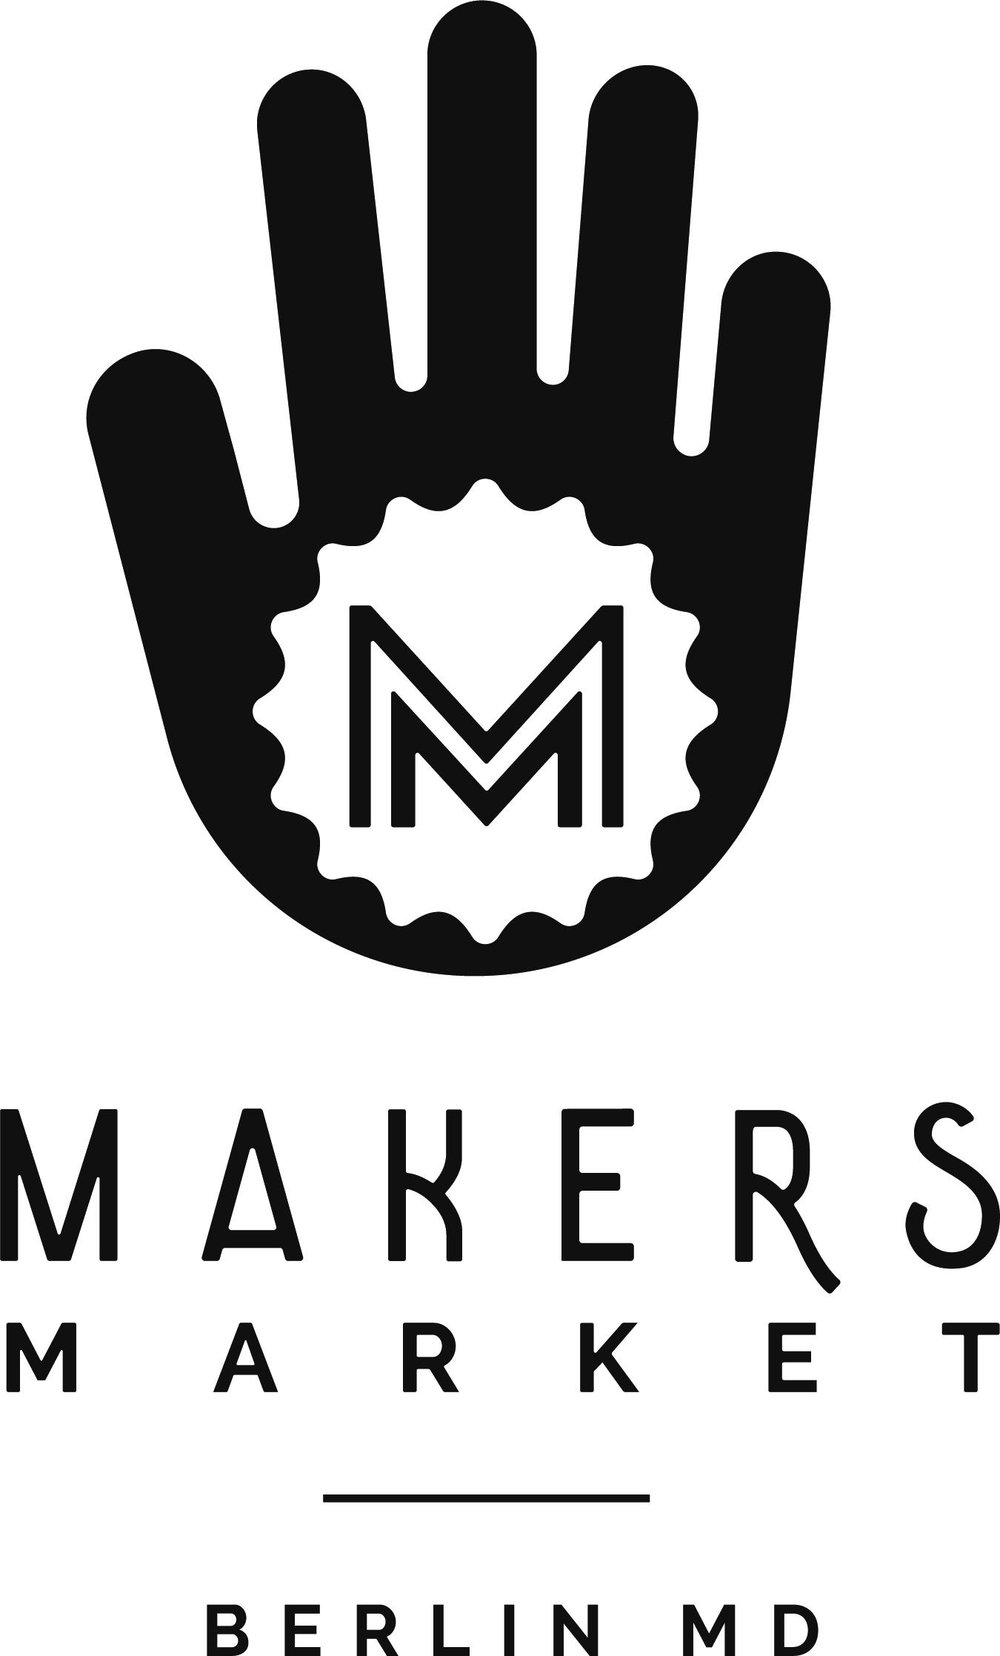 makers-market-logo-hand.jpg